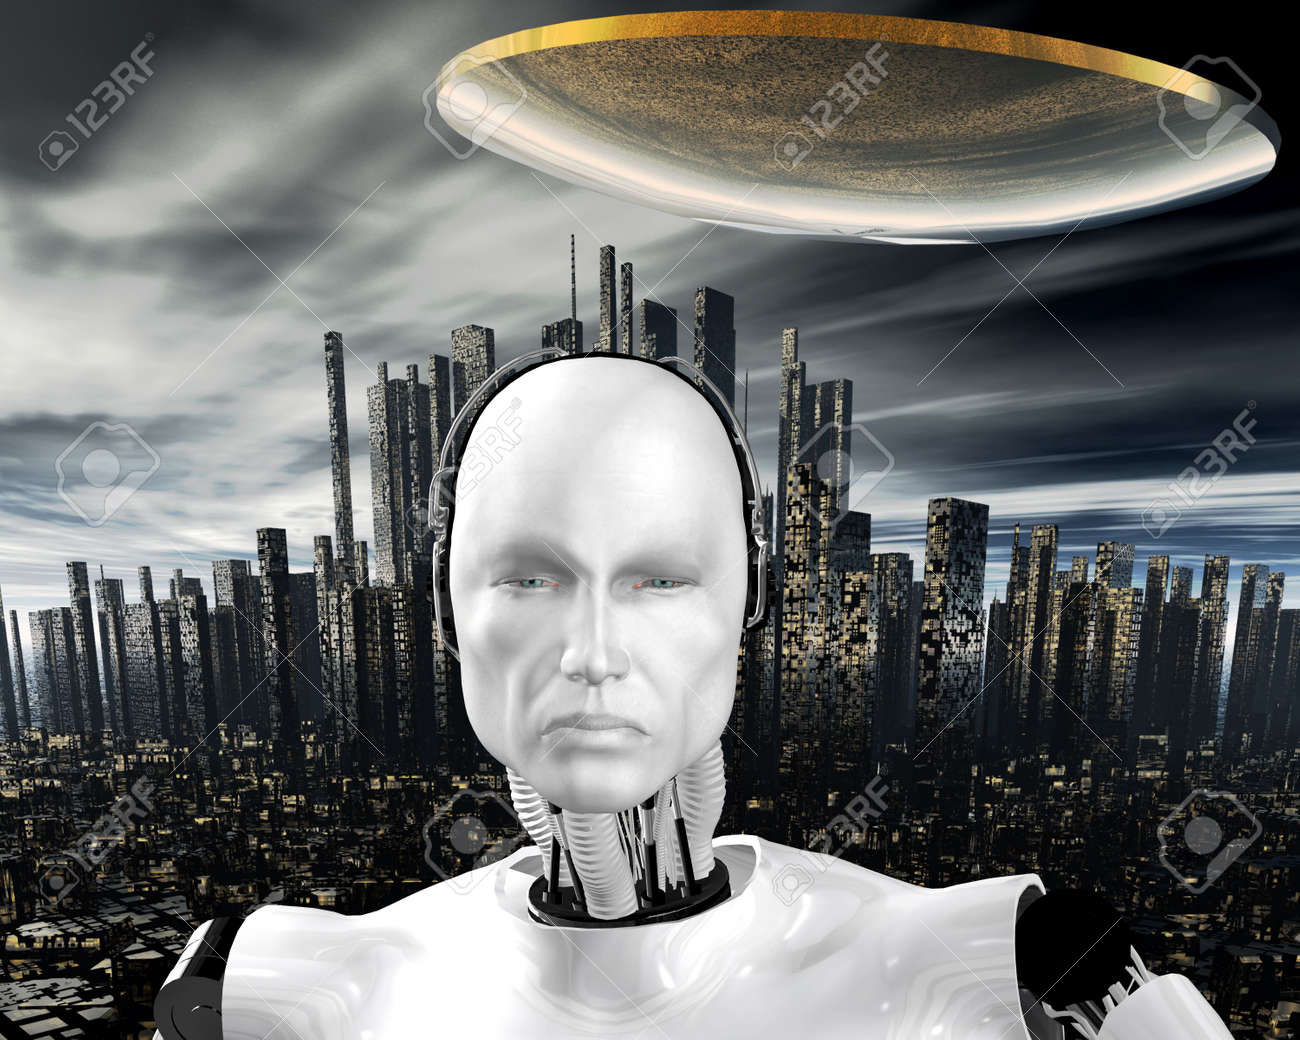 android, cybernetic intelligence machine in 3d Stock Photo - 5943962